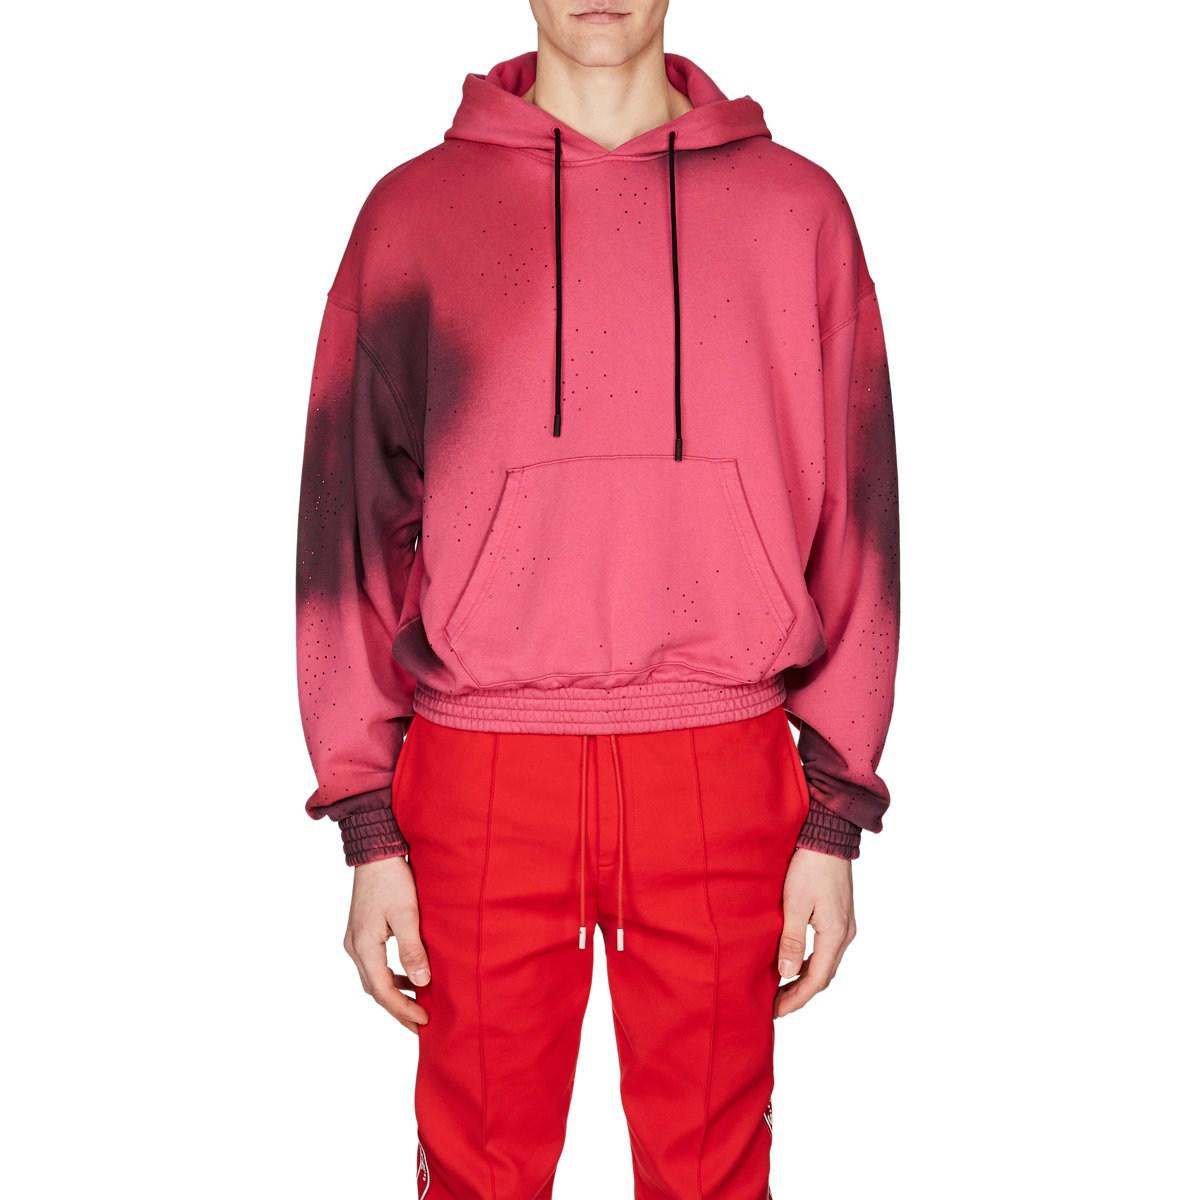 248d485b50b6 Off-White C O Virgil Abloh Cotton French Terry Hoodie in Pink for ...